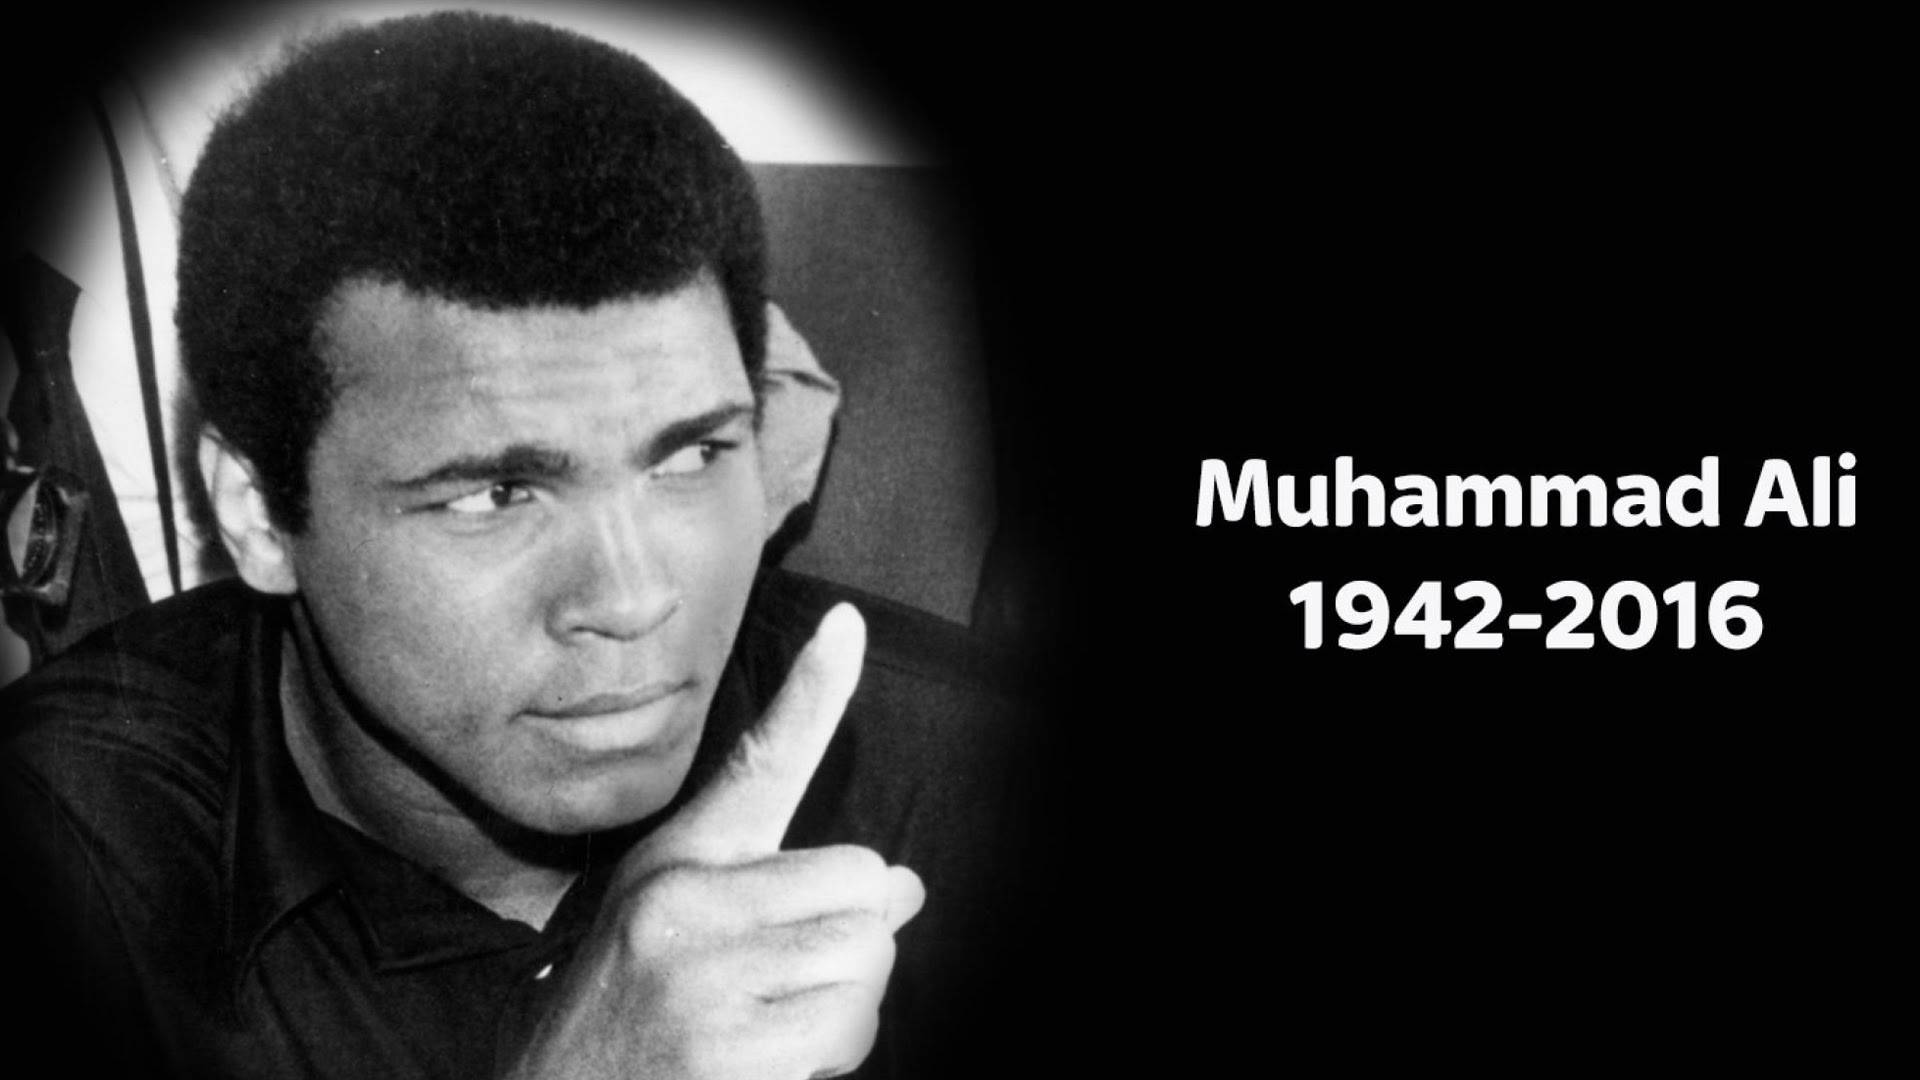 Muhammad Ali Dies The greatest boxer of them all actually was destroyed by  his occupation – YouTube